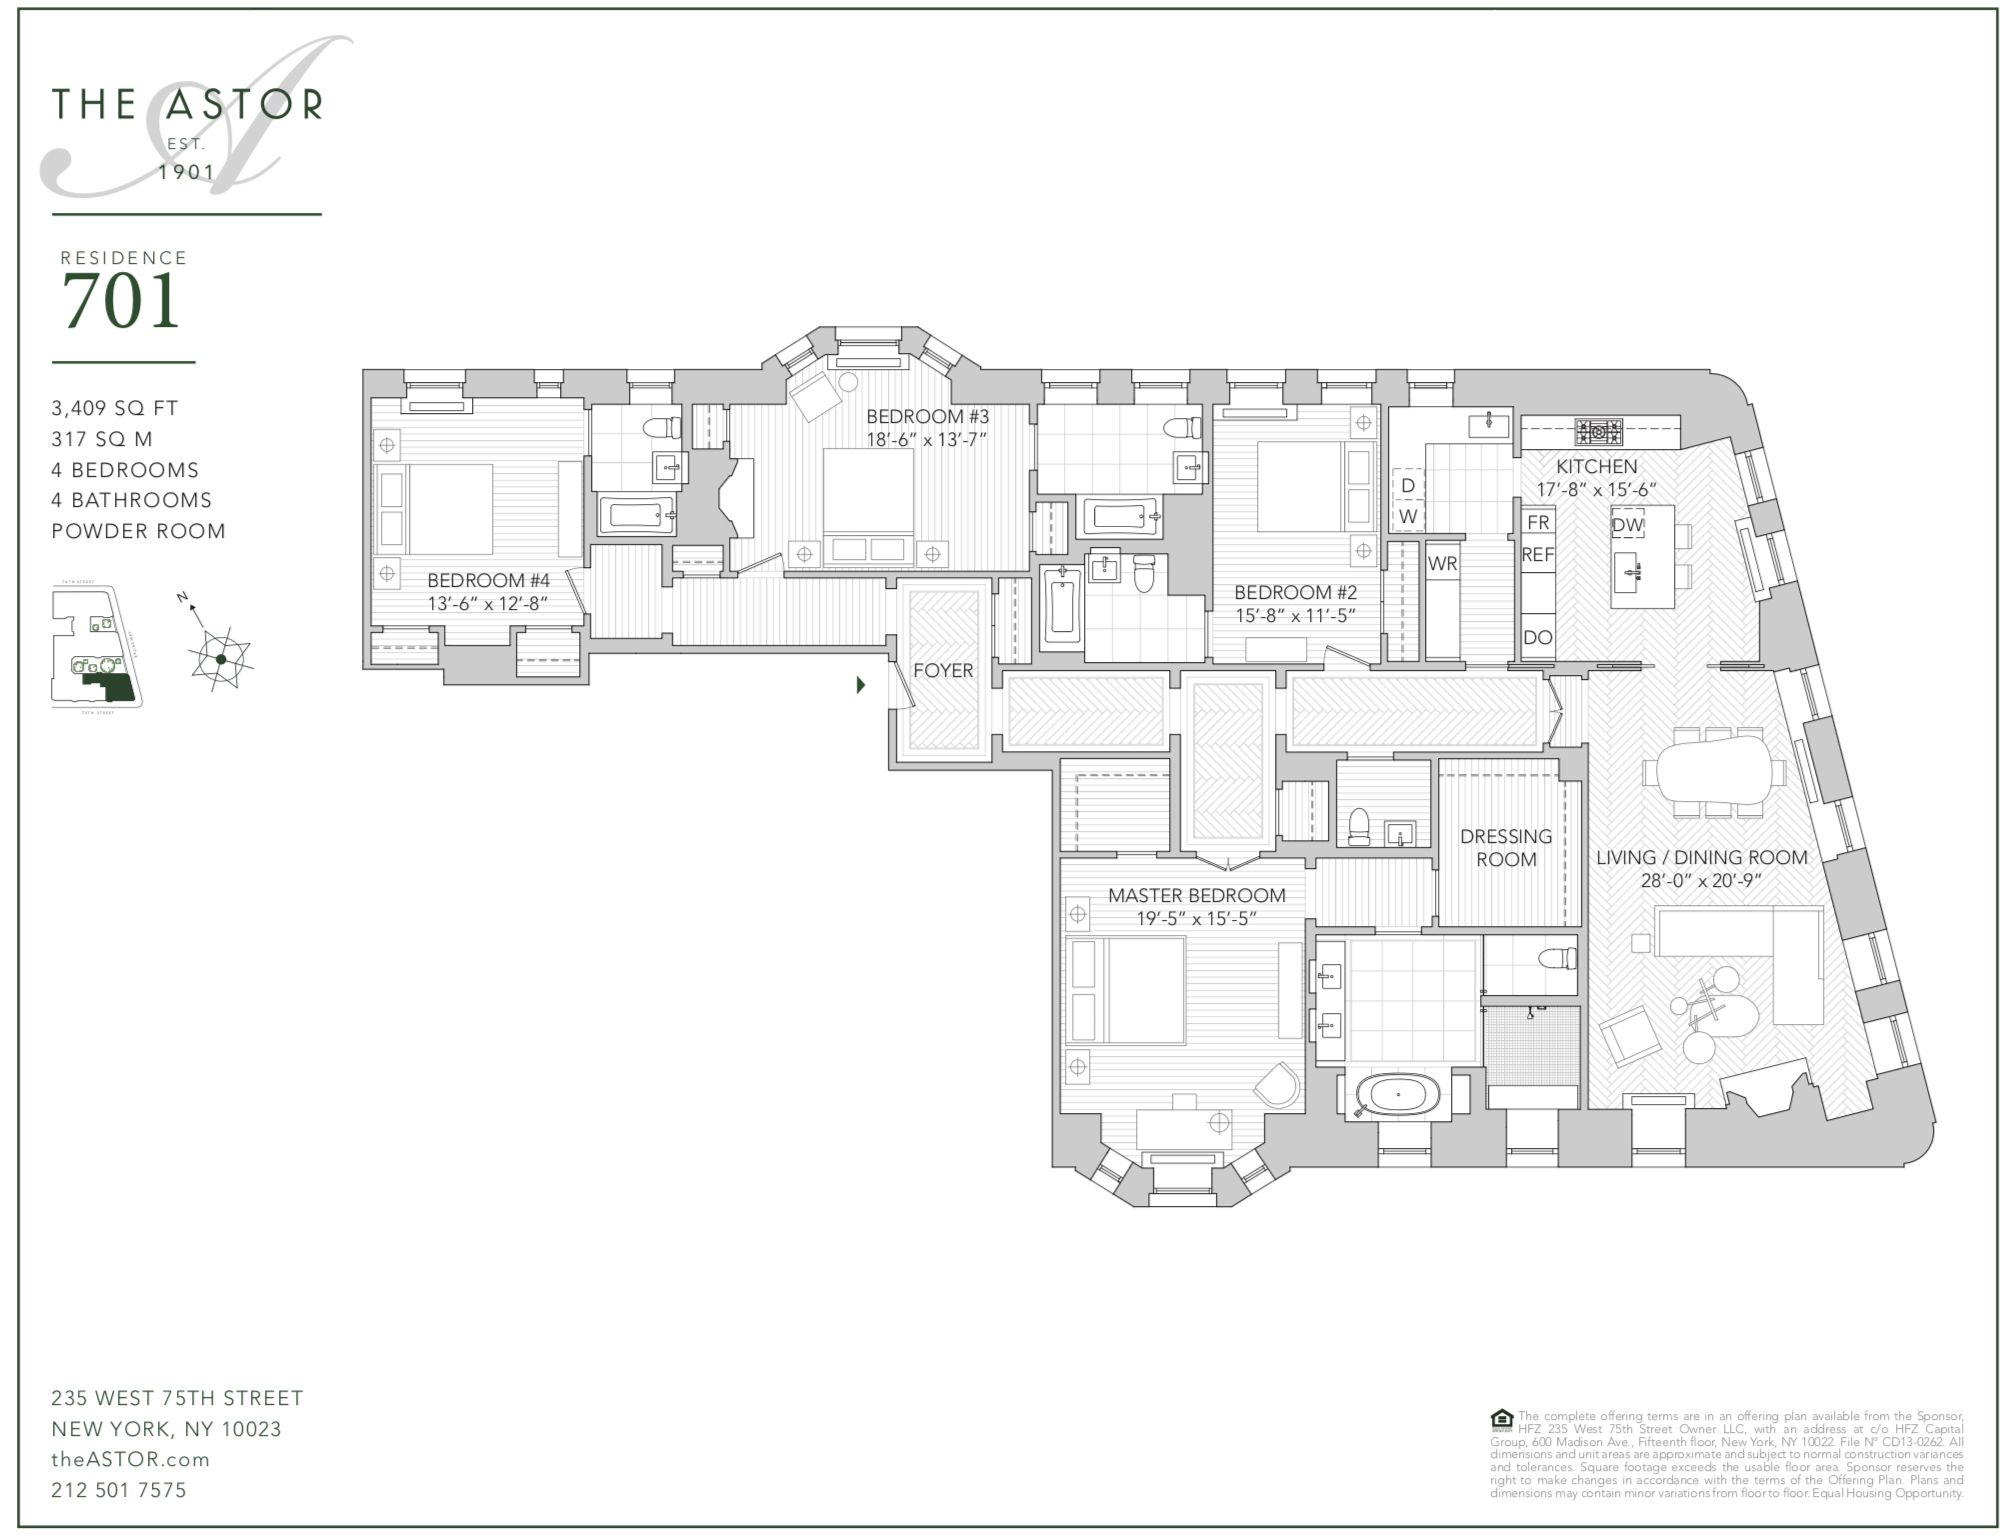 The Astor Upper West Side Condos Residence 701 Upper West Side Apartment Apartment Floor Plans City Living Apartment